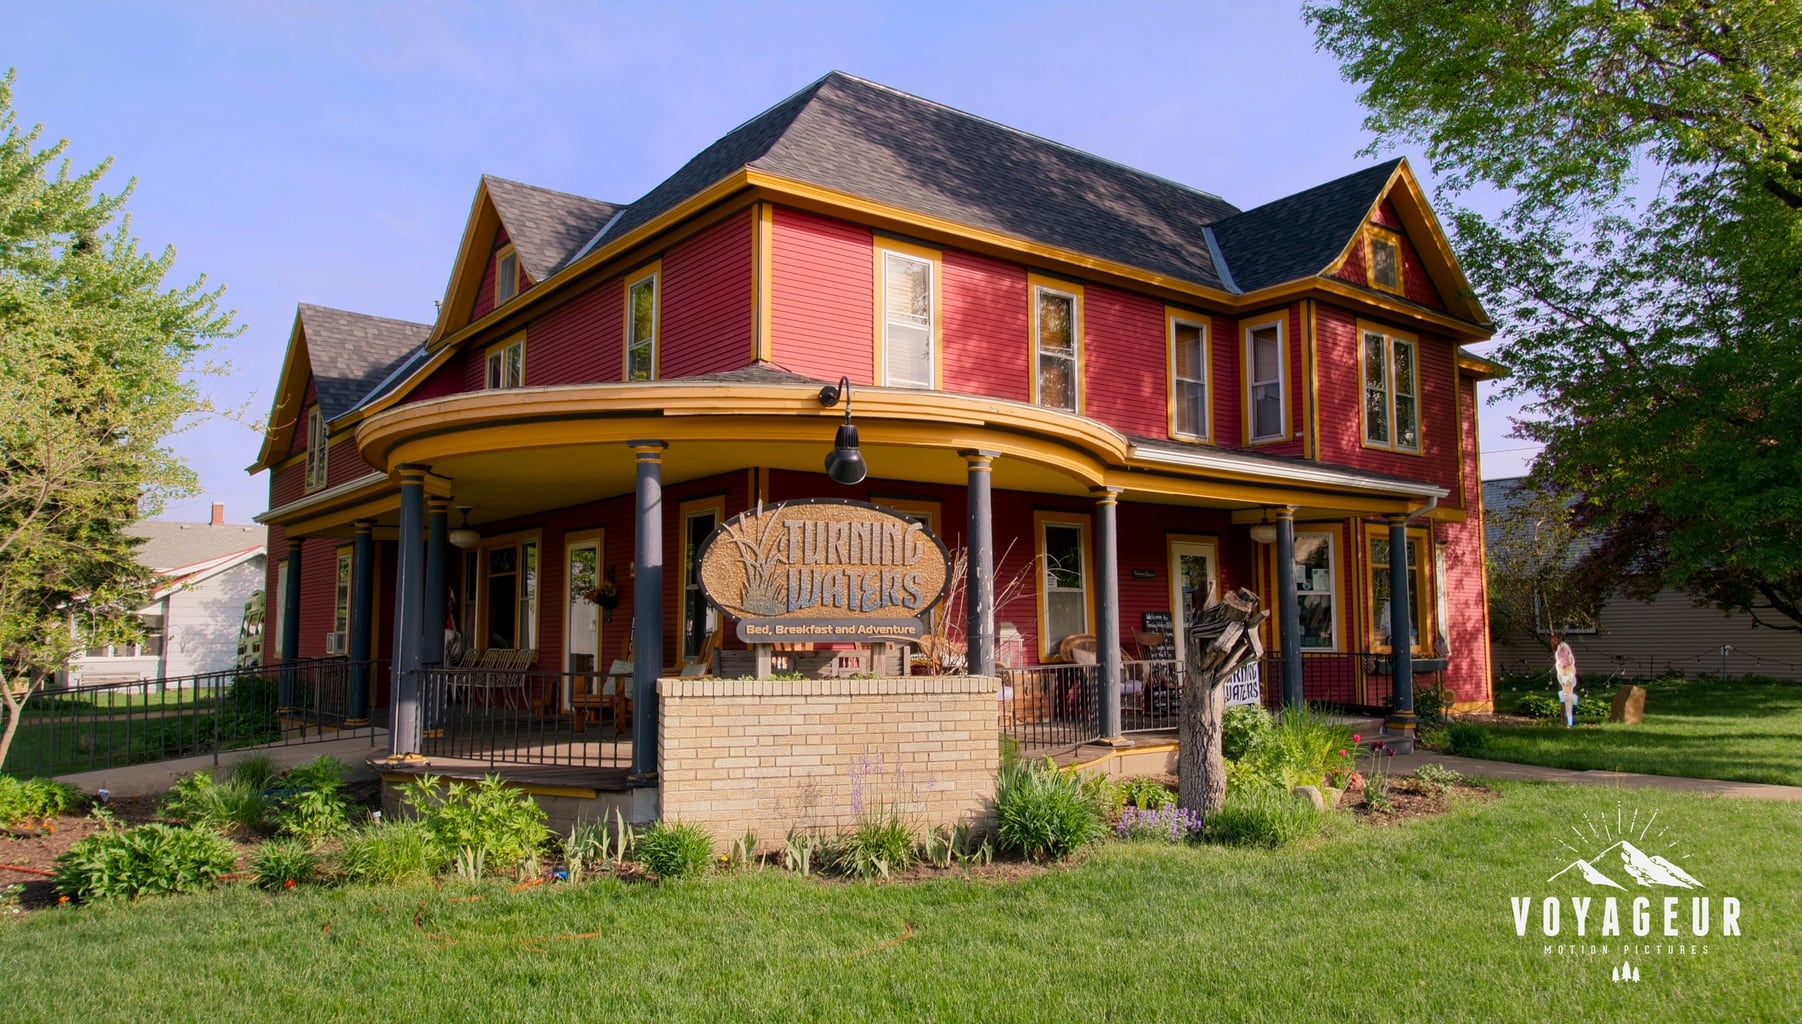 Exterior of Turning Waters Bed, Breakfast, & Brewery